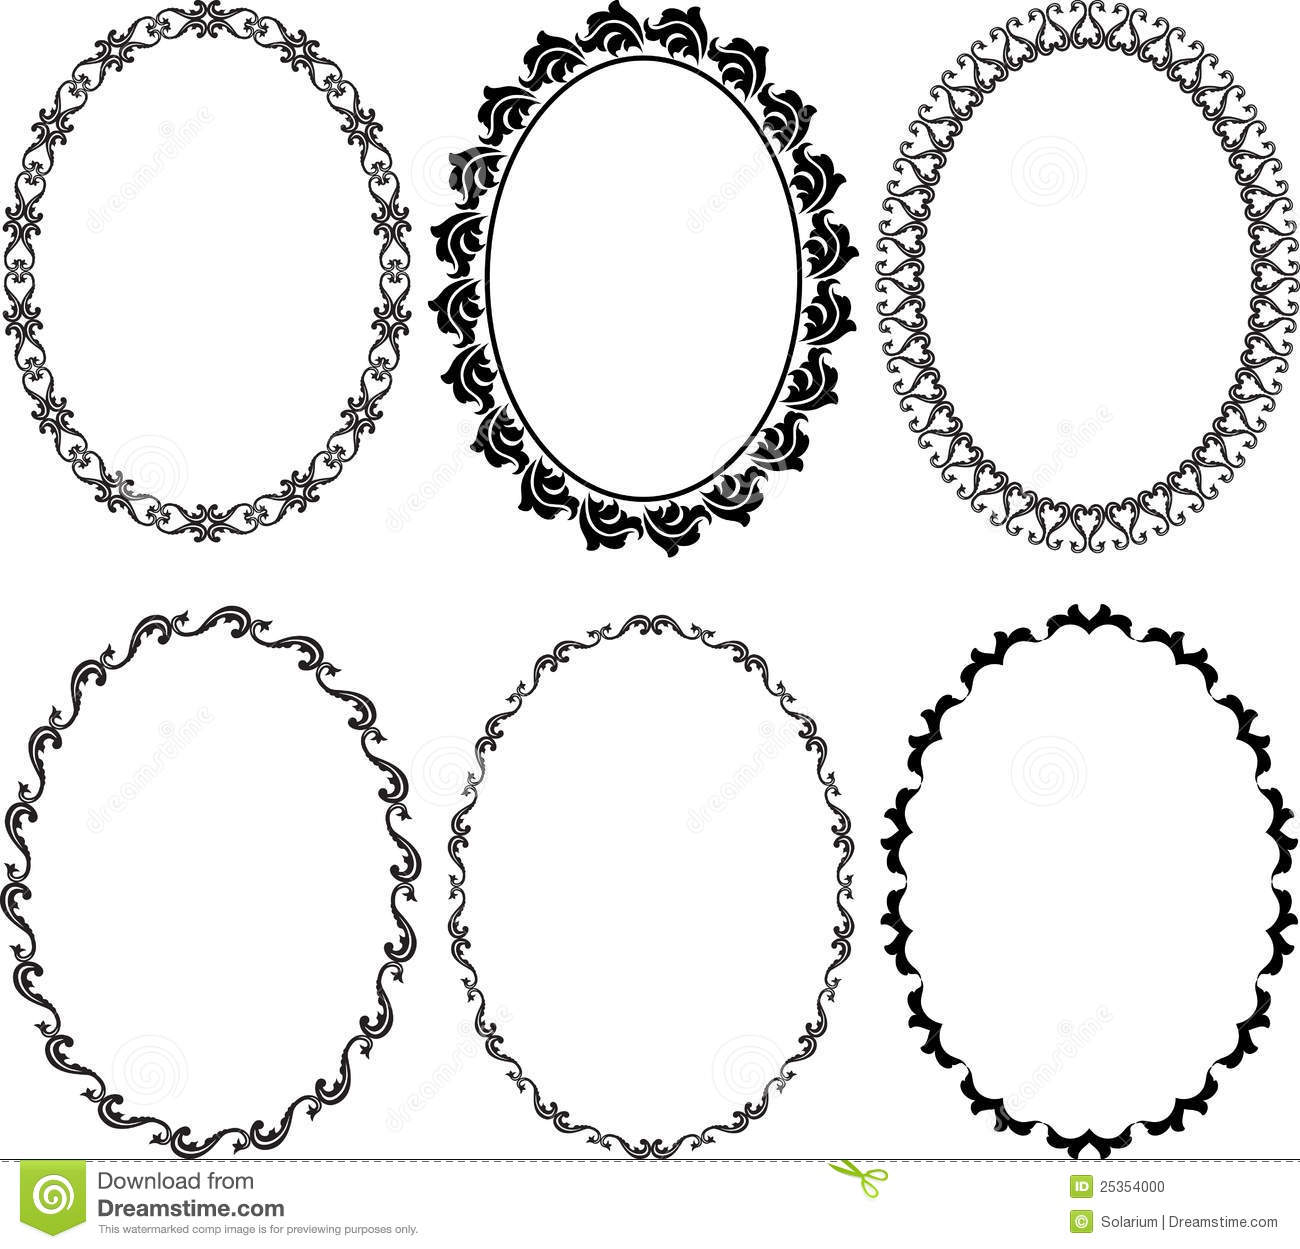 Frames Oval Stock Photo - Image: 25354000